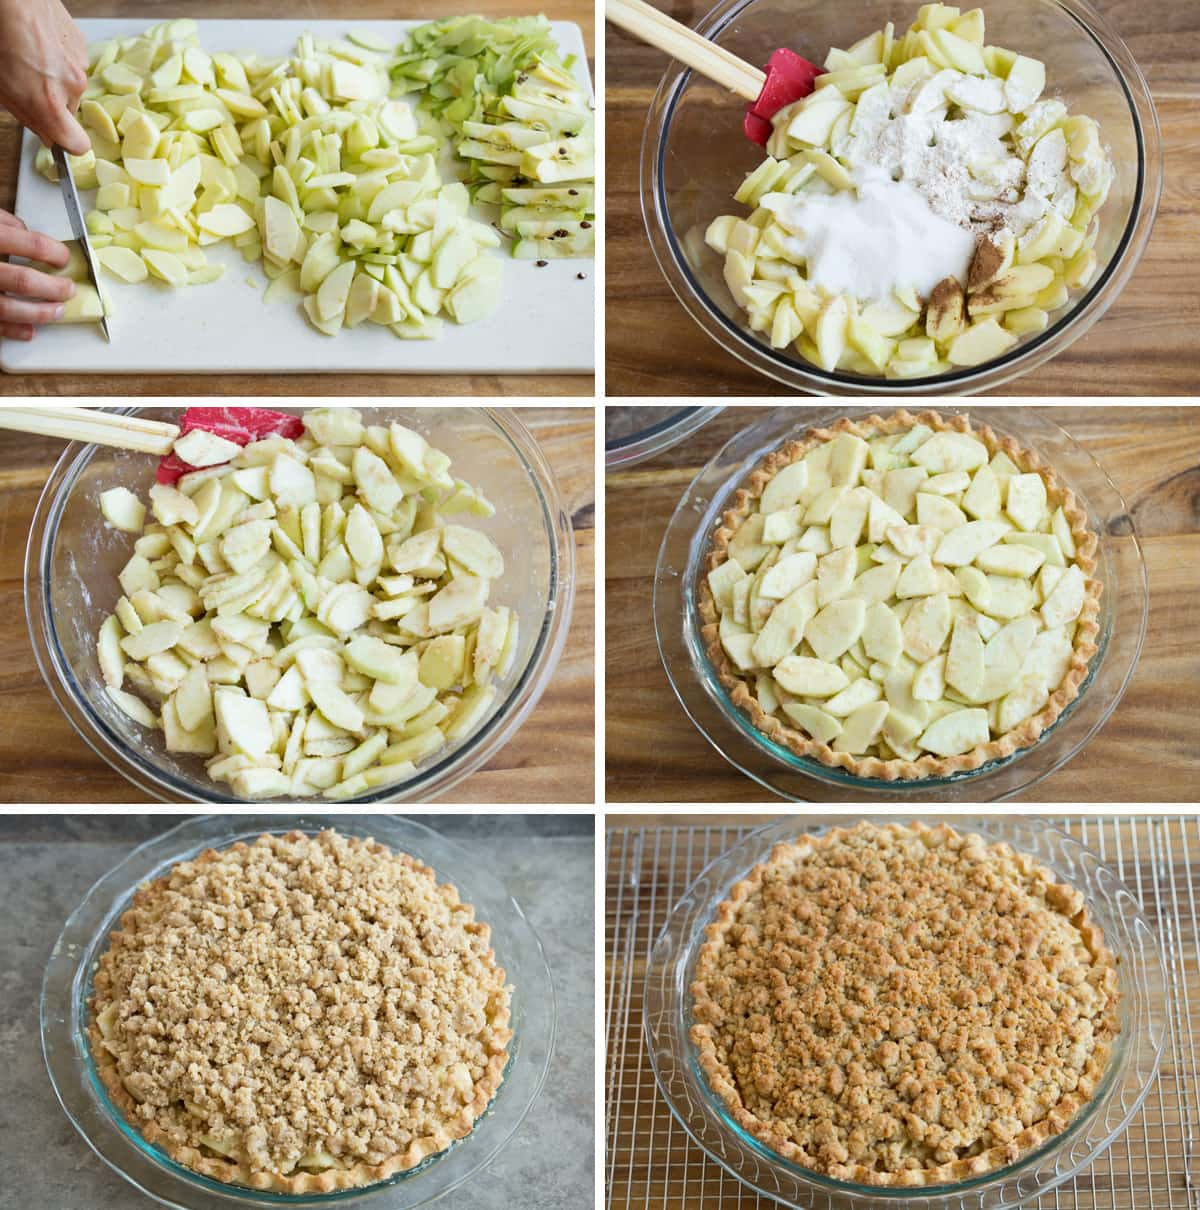 Showing how to prepare apple filling for dutch apple pie, and assembling pie.